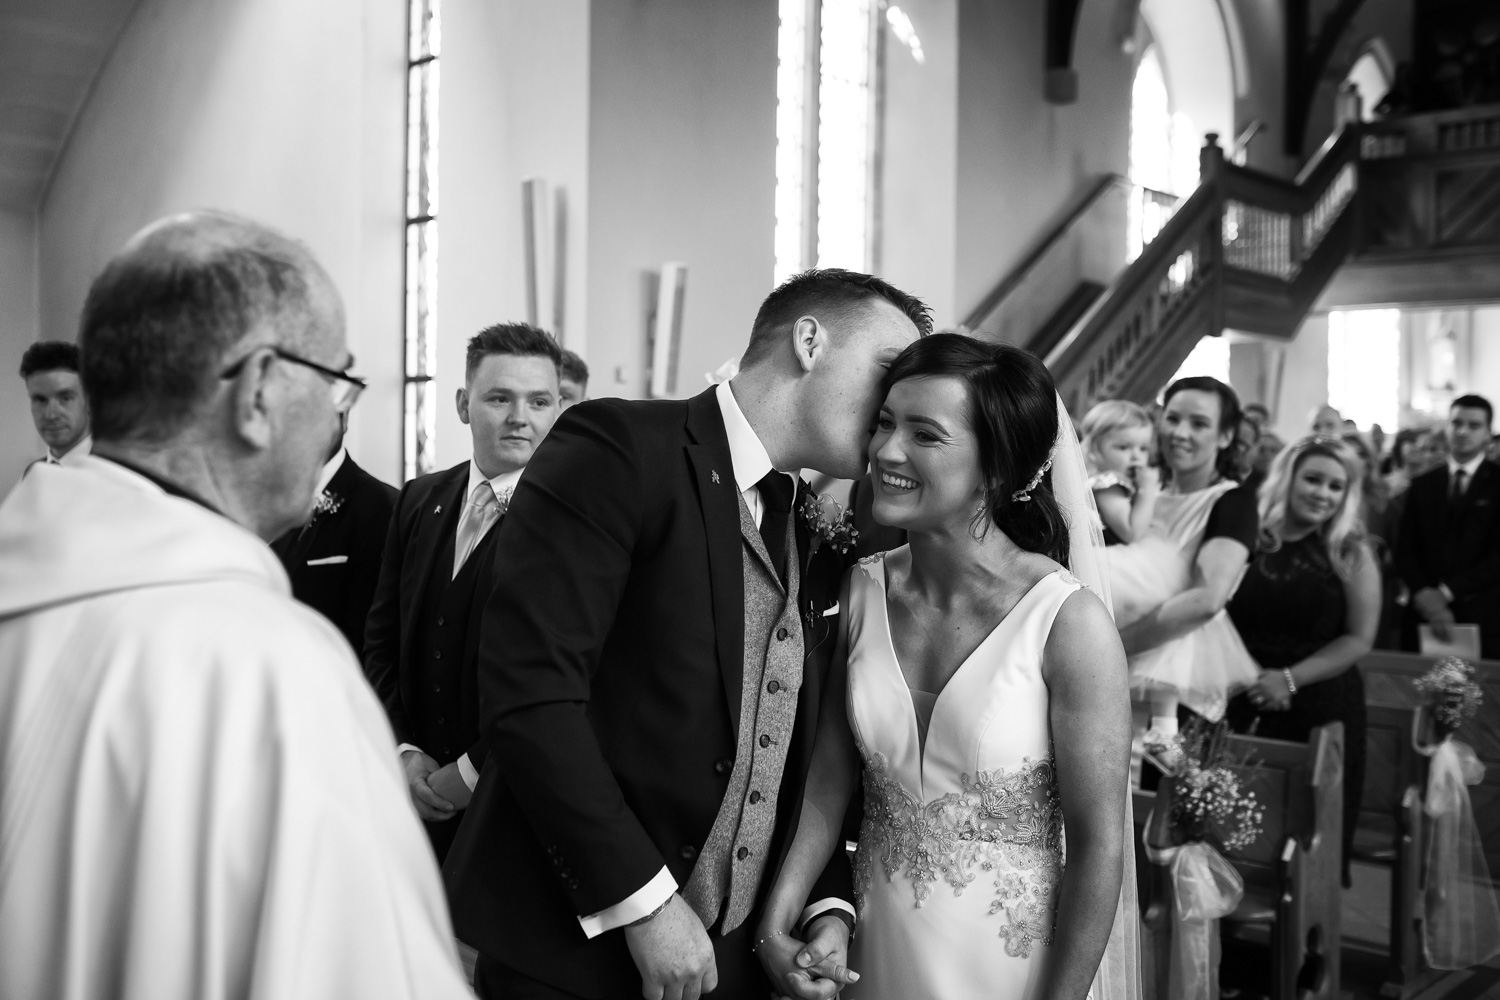 Mark_Barnes_Northern_Ireland_wedding_photographer_redcastle_hotel_Donegal_Wedding_photography_Donegal_wedding_photographer-17.jpg